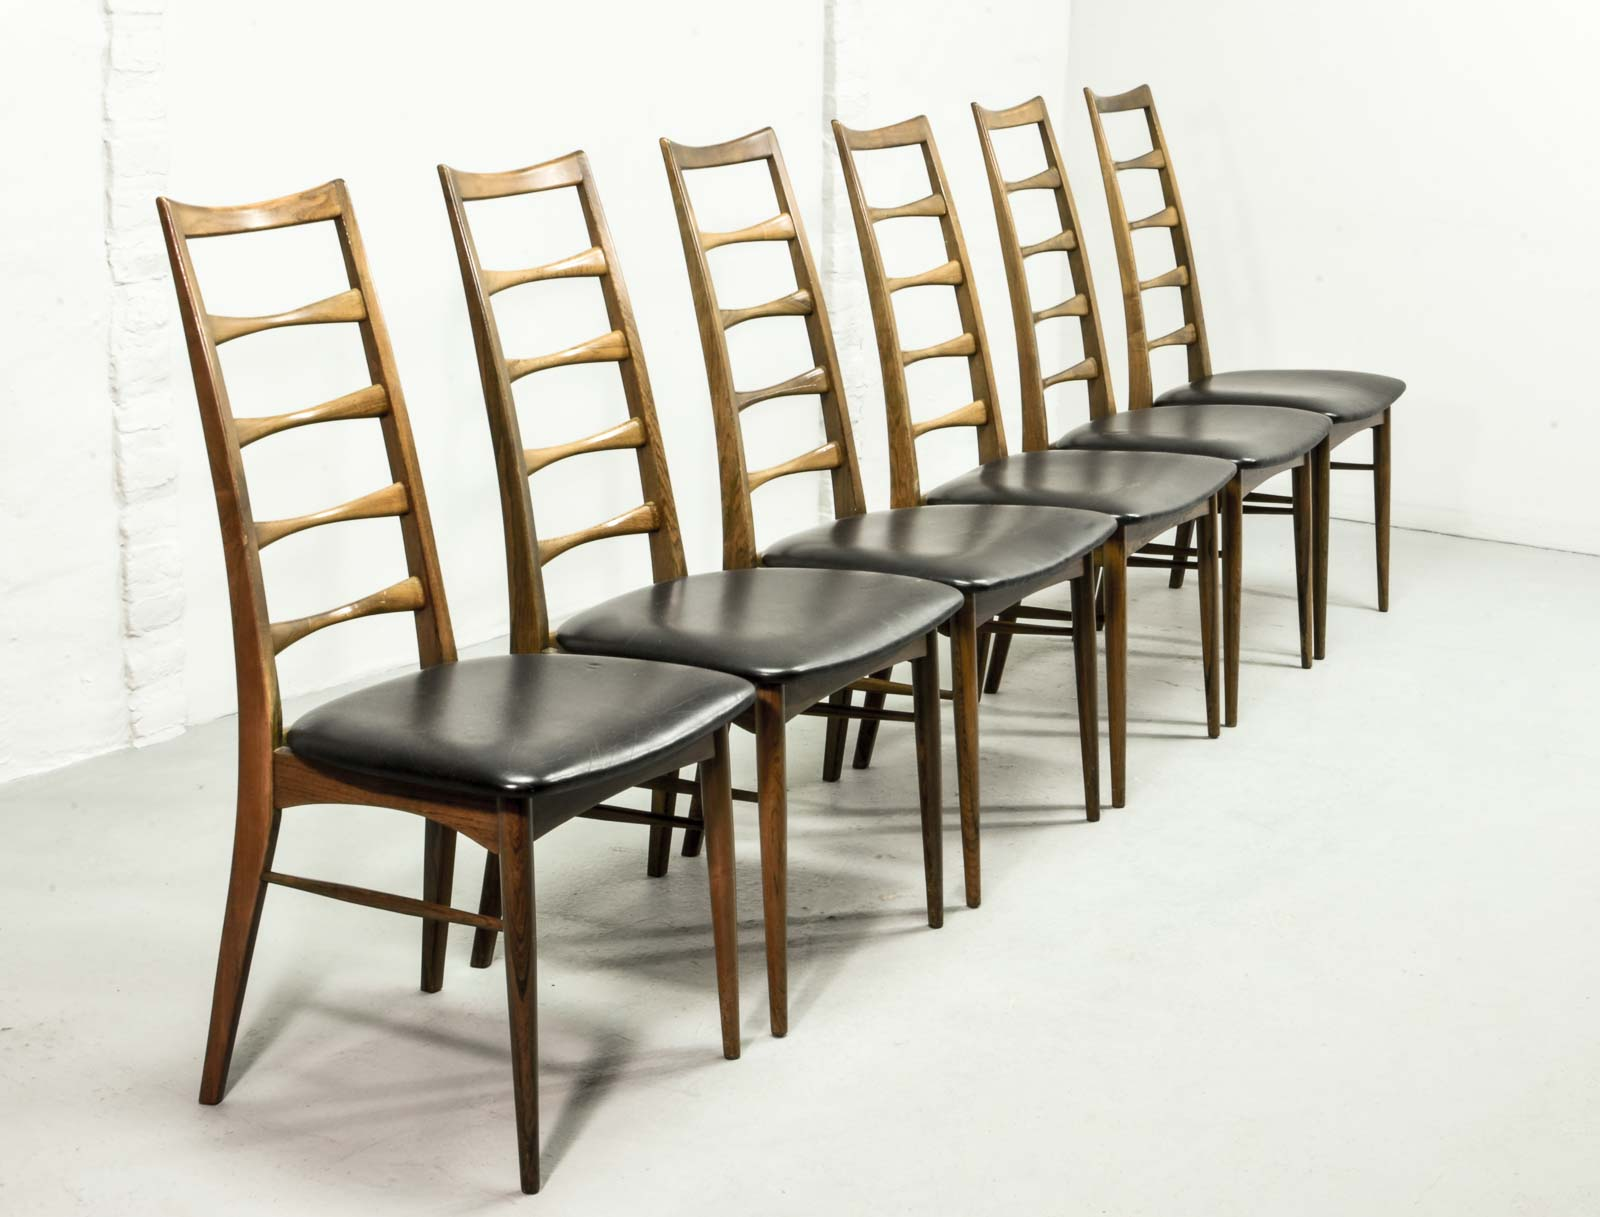 Exclusive Rosewood Set Of Six U0027Lisu0027 Dining Chairs By Niels Koefoed Danish  Design